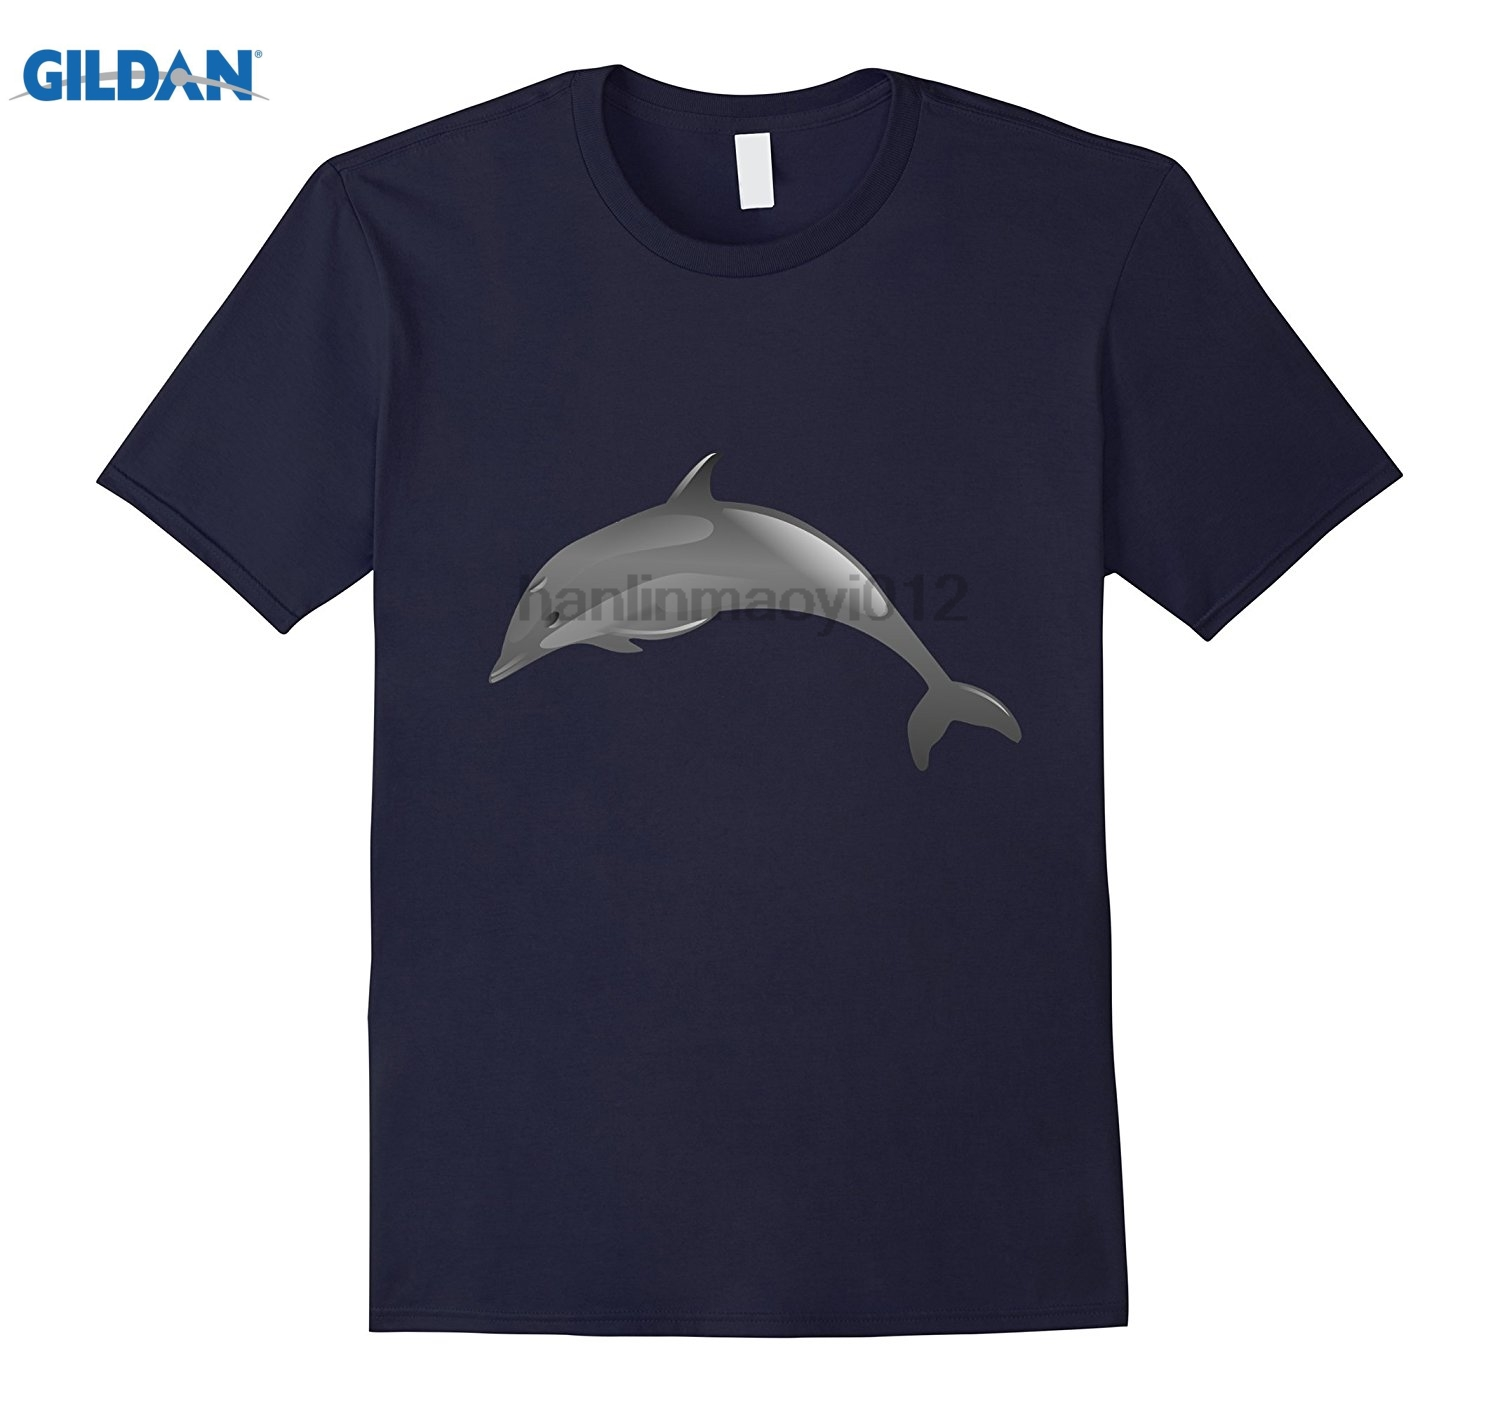 GILDAN Dolphin Mammal Marine Ocean t-shirt 2018 New Hot Summer GILDAN T-shirt 100% Cotton sunglasses women T-shirt